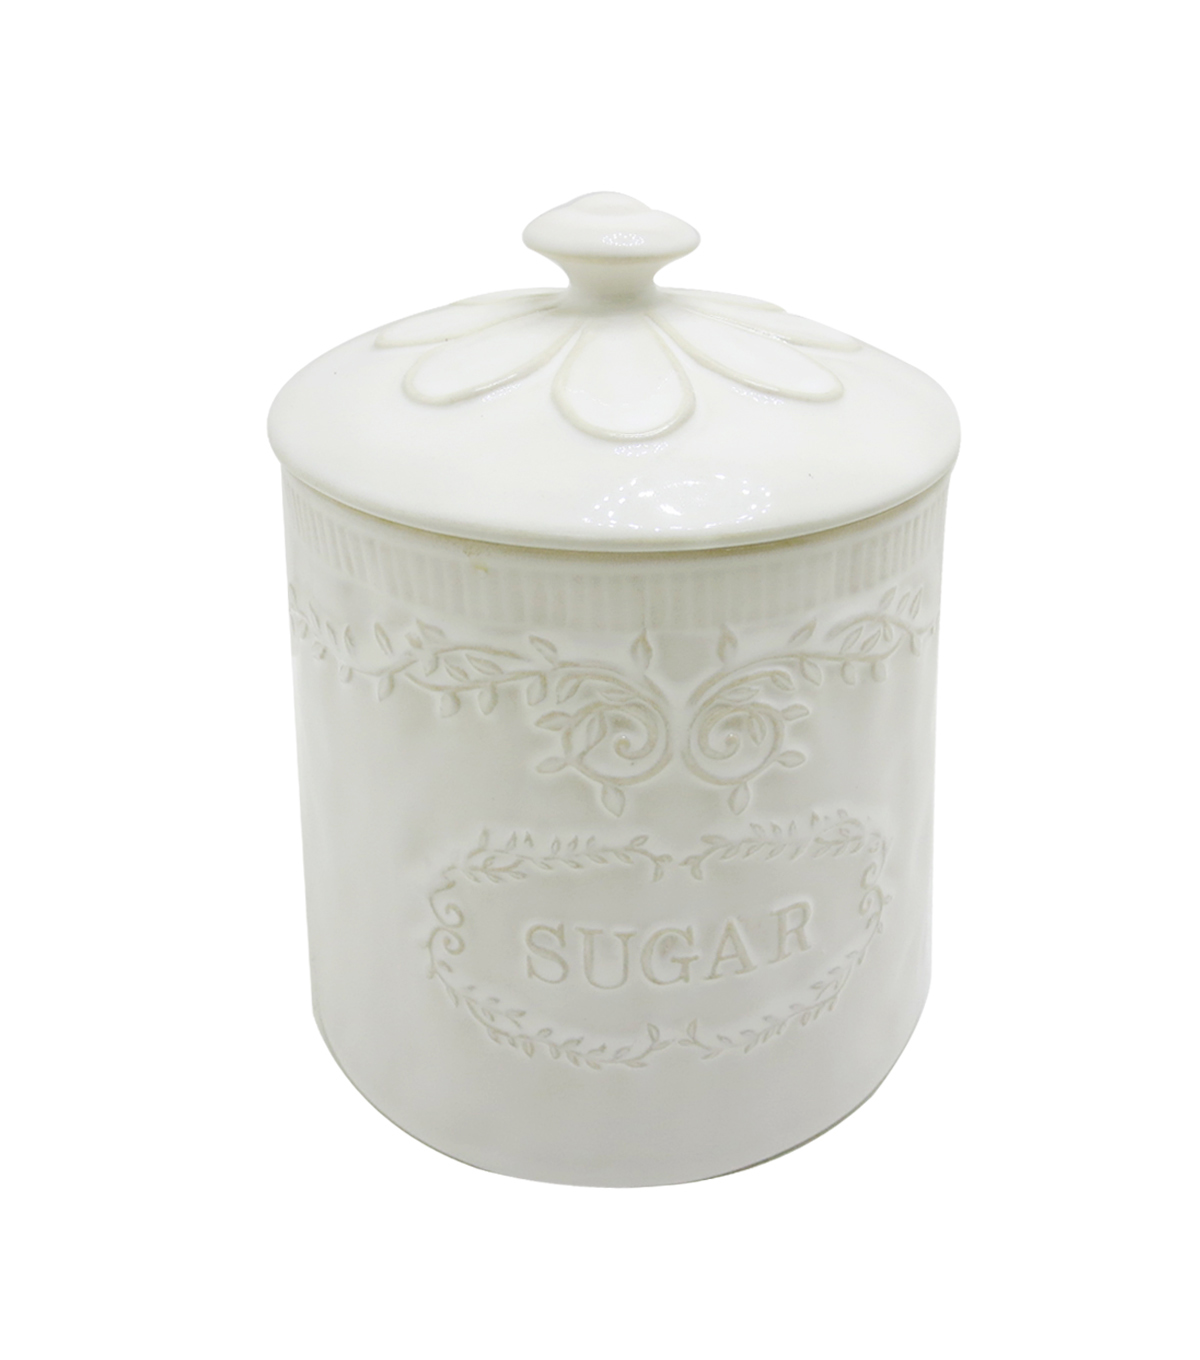 Hudson 43 Farm 5.32\u0027\u0027x7.36\u0027\u0027 Storage Jar-Sugar